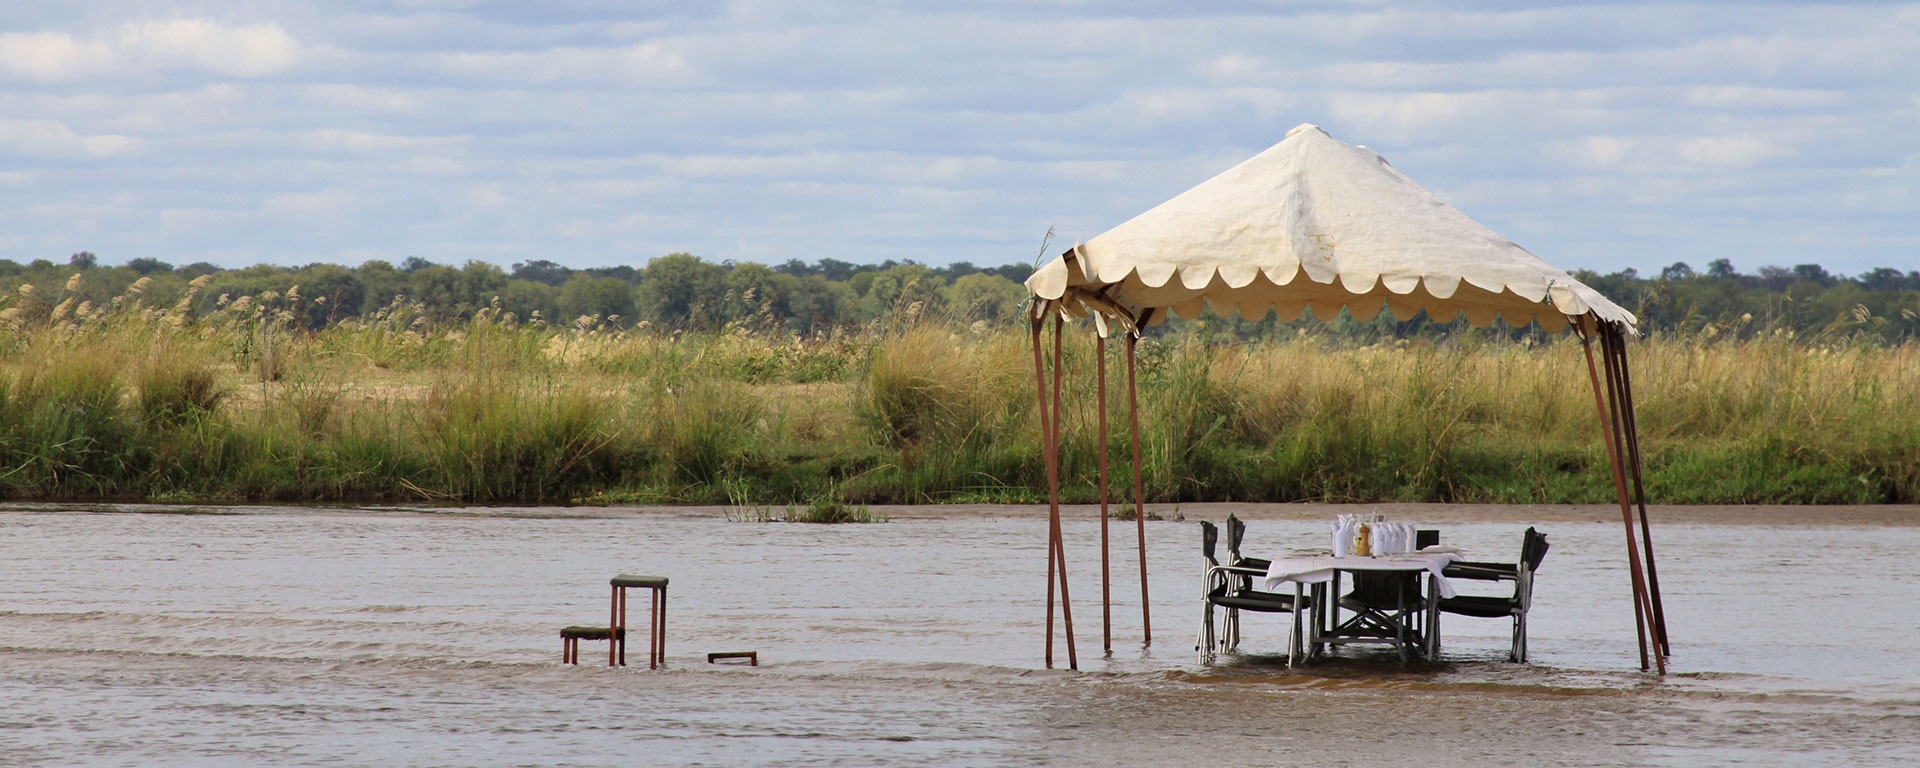 Lunch in the river – the Zambezi's sandbanks make for impromptu 'restaurants'.